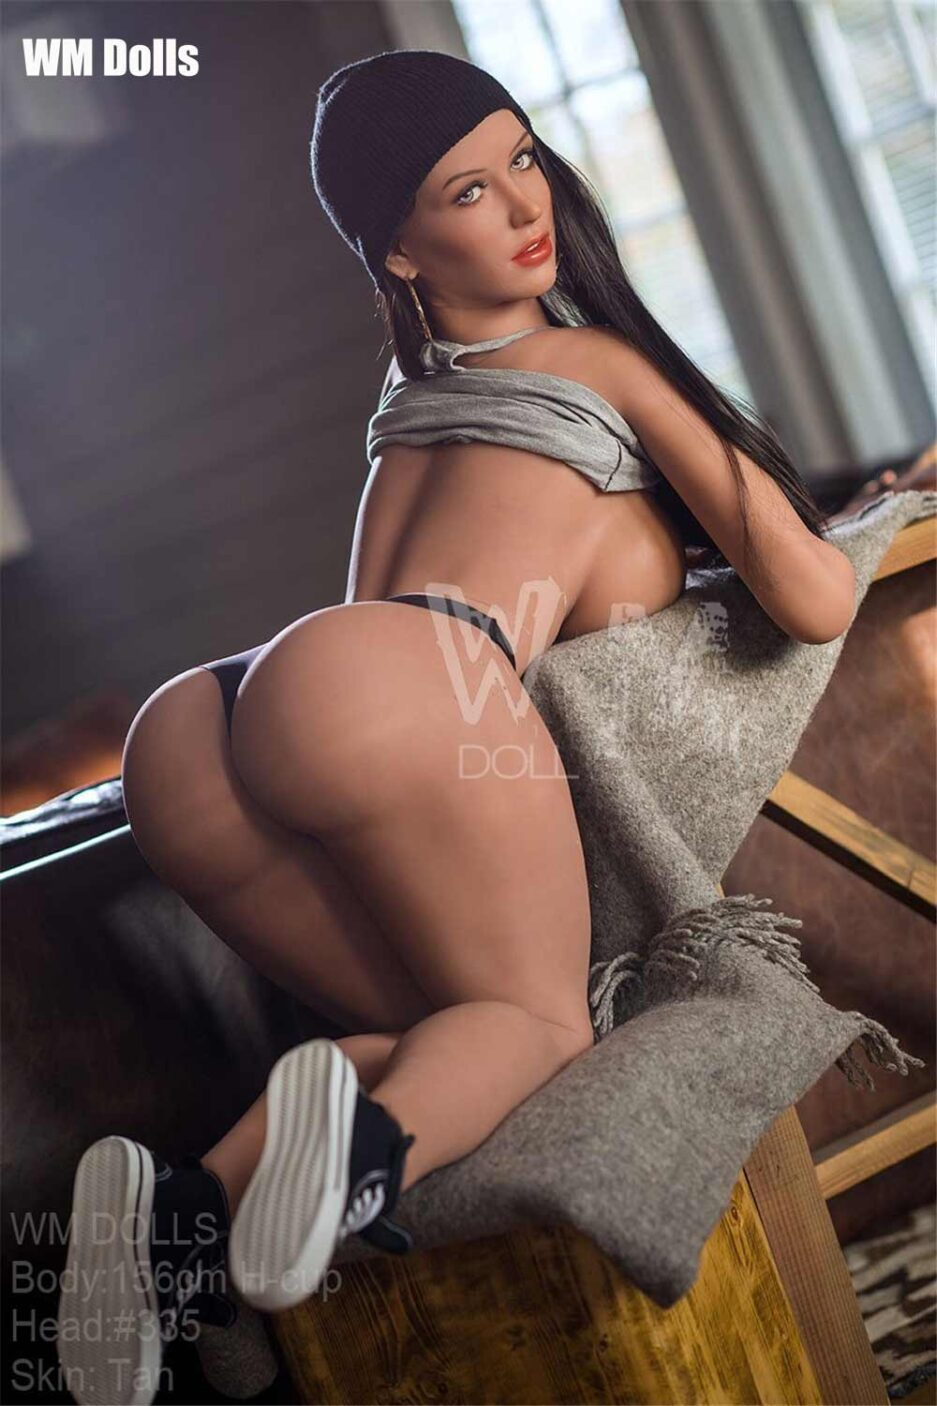 Big breasted sex doll with cocked ass